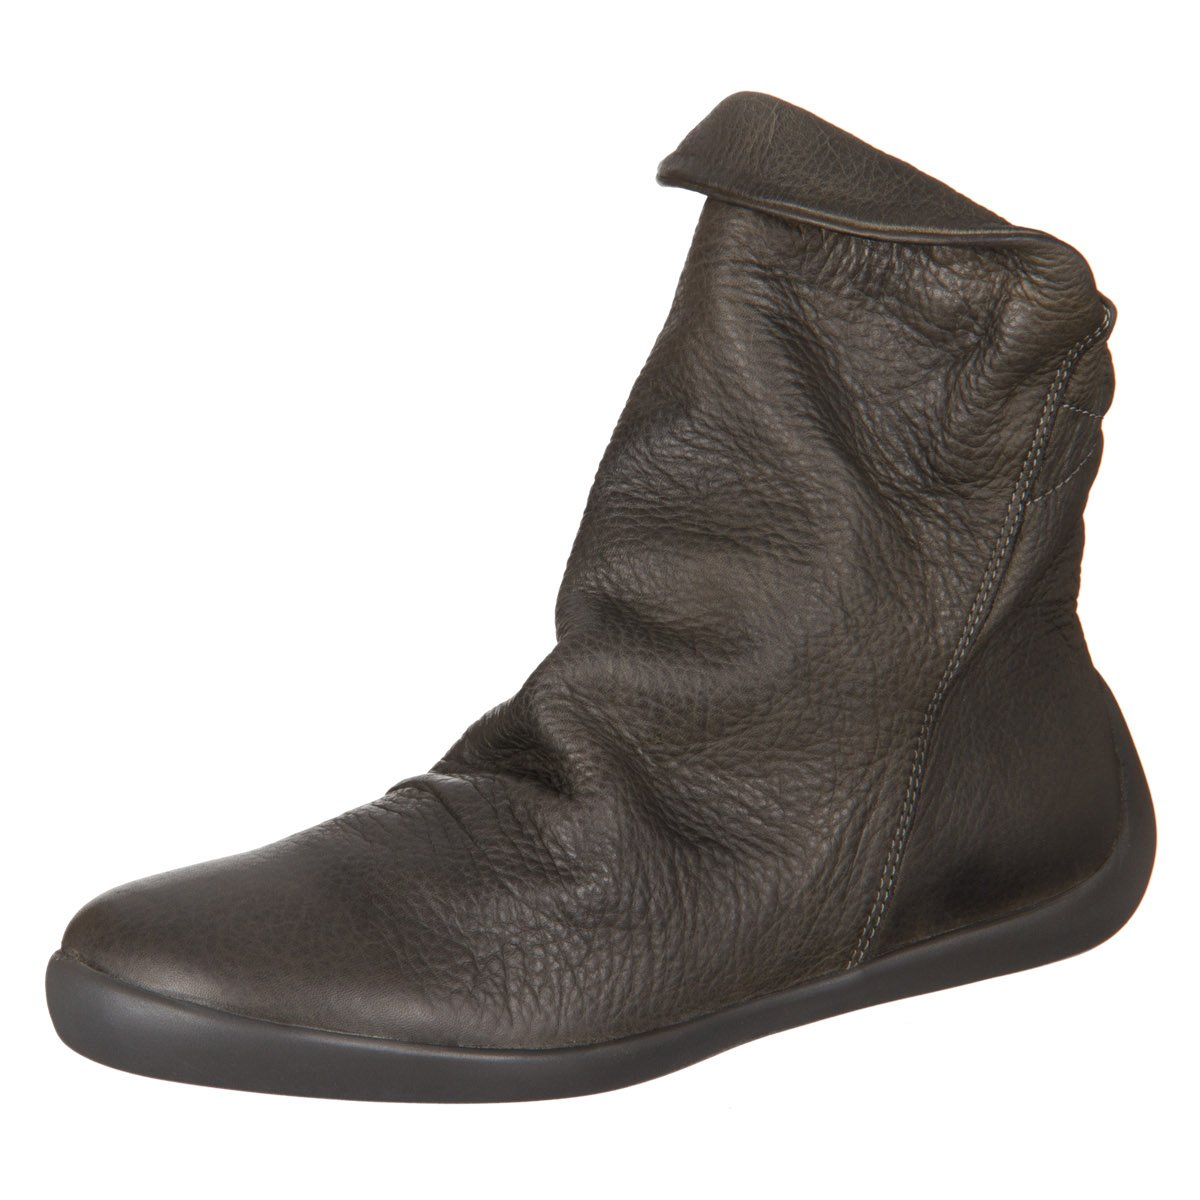 Softinos Stiefelette Nat washed militar